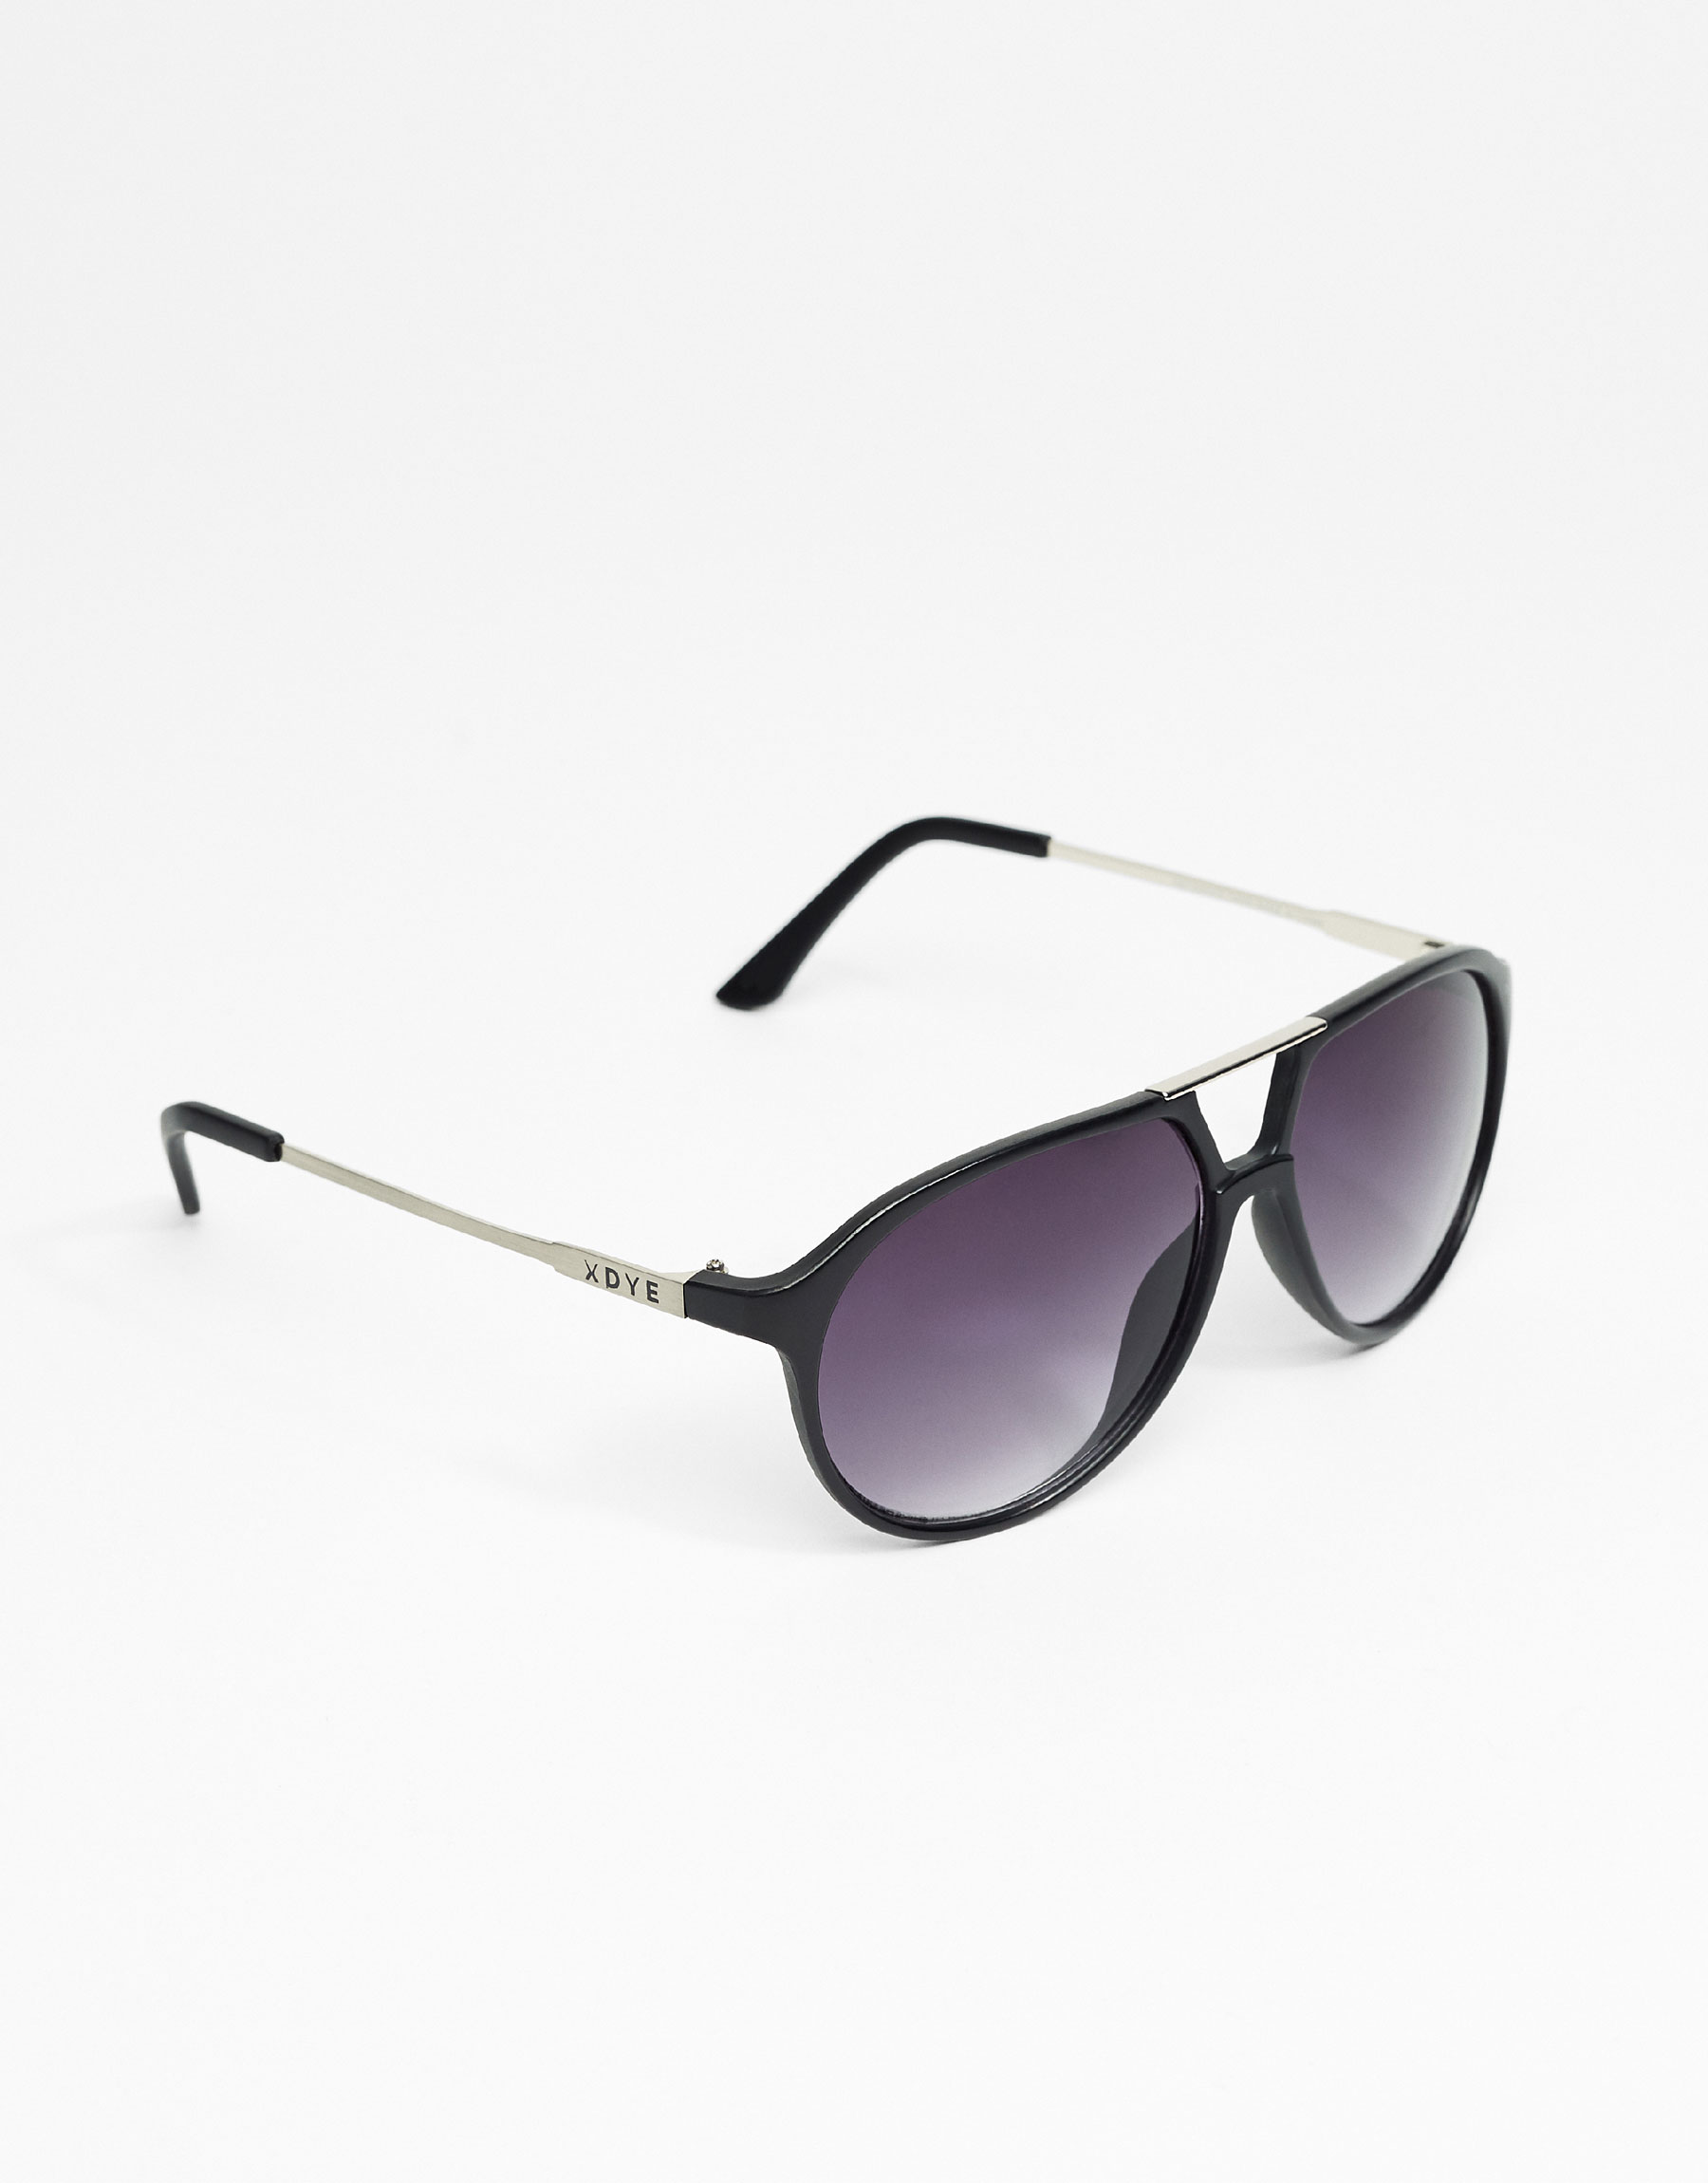 XDYE Sunglasses - Runner Black